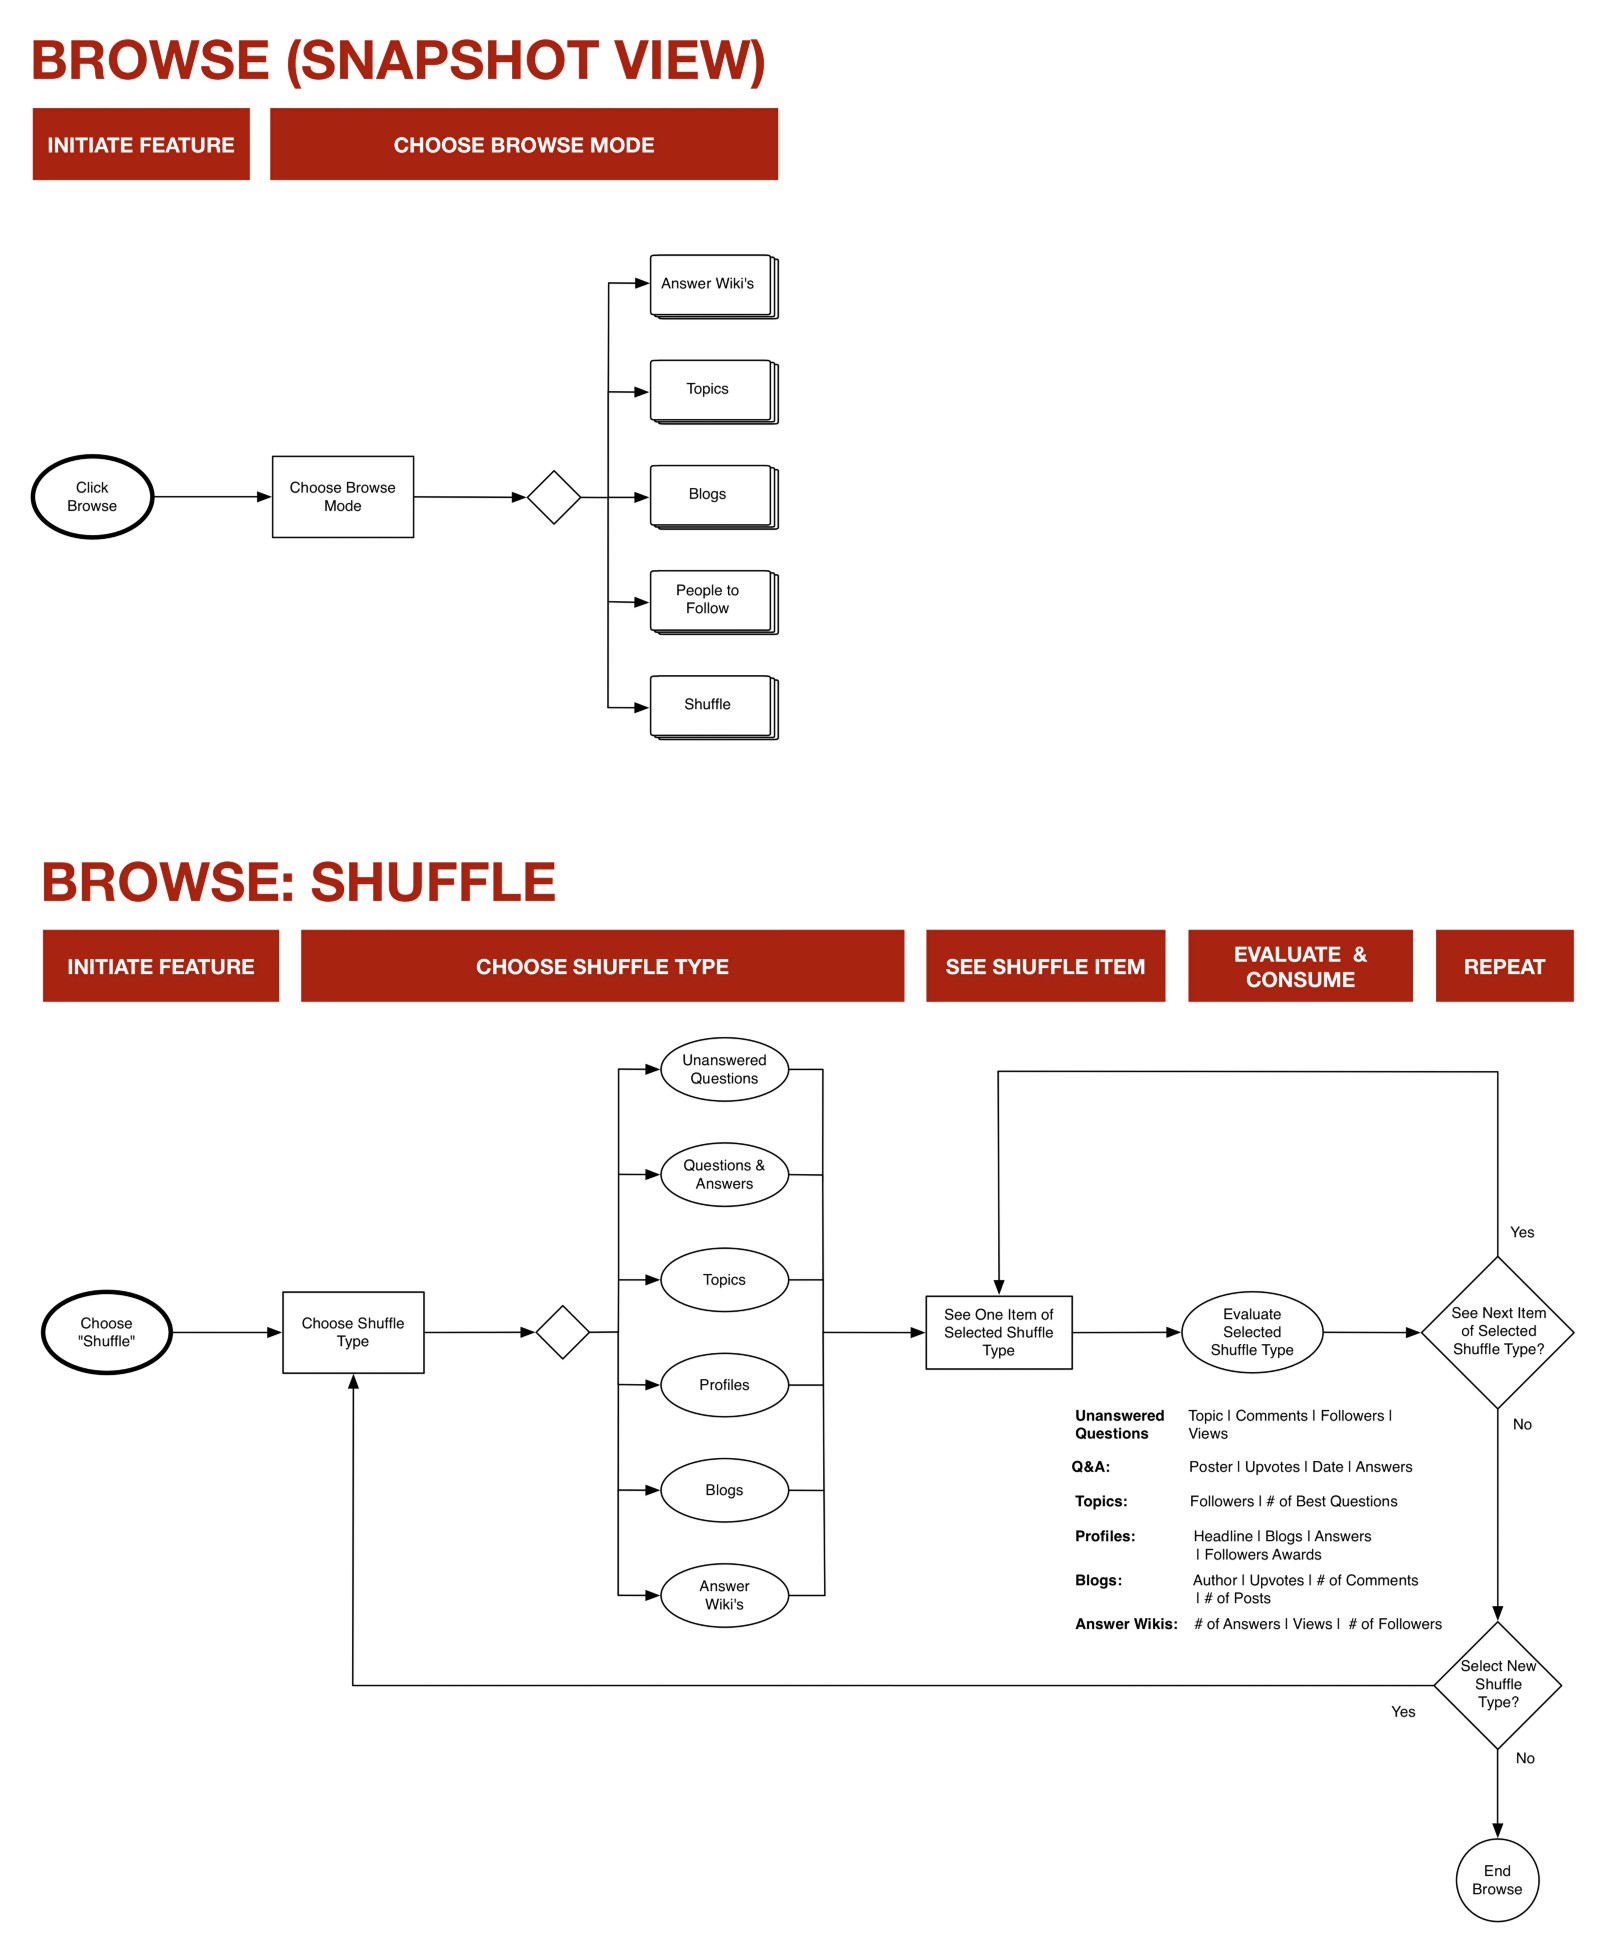 Example of the Browse Task Flow, showing the high-level snapshot view and the detailed Shuffle flow. Full Browse Task Flow here: https://dl.dropboxusercontent.com/u/93309972/Quora-Browse-FULL-Task-Flow-Resized.jpg